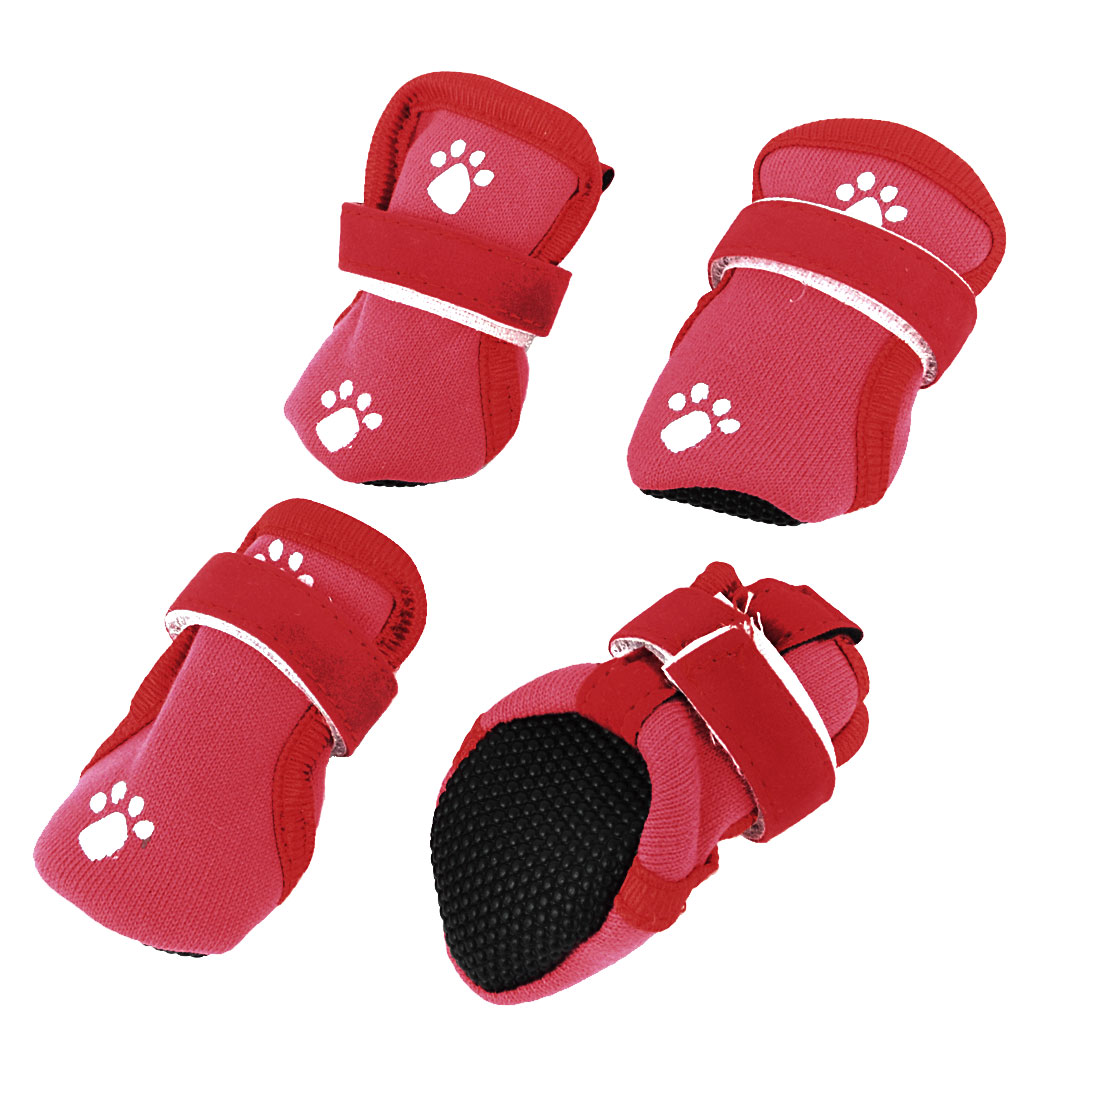 2 Pairs Paw Pattern Detachable Closure Pet Dog Puppy Booties Shoes Red XXS